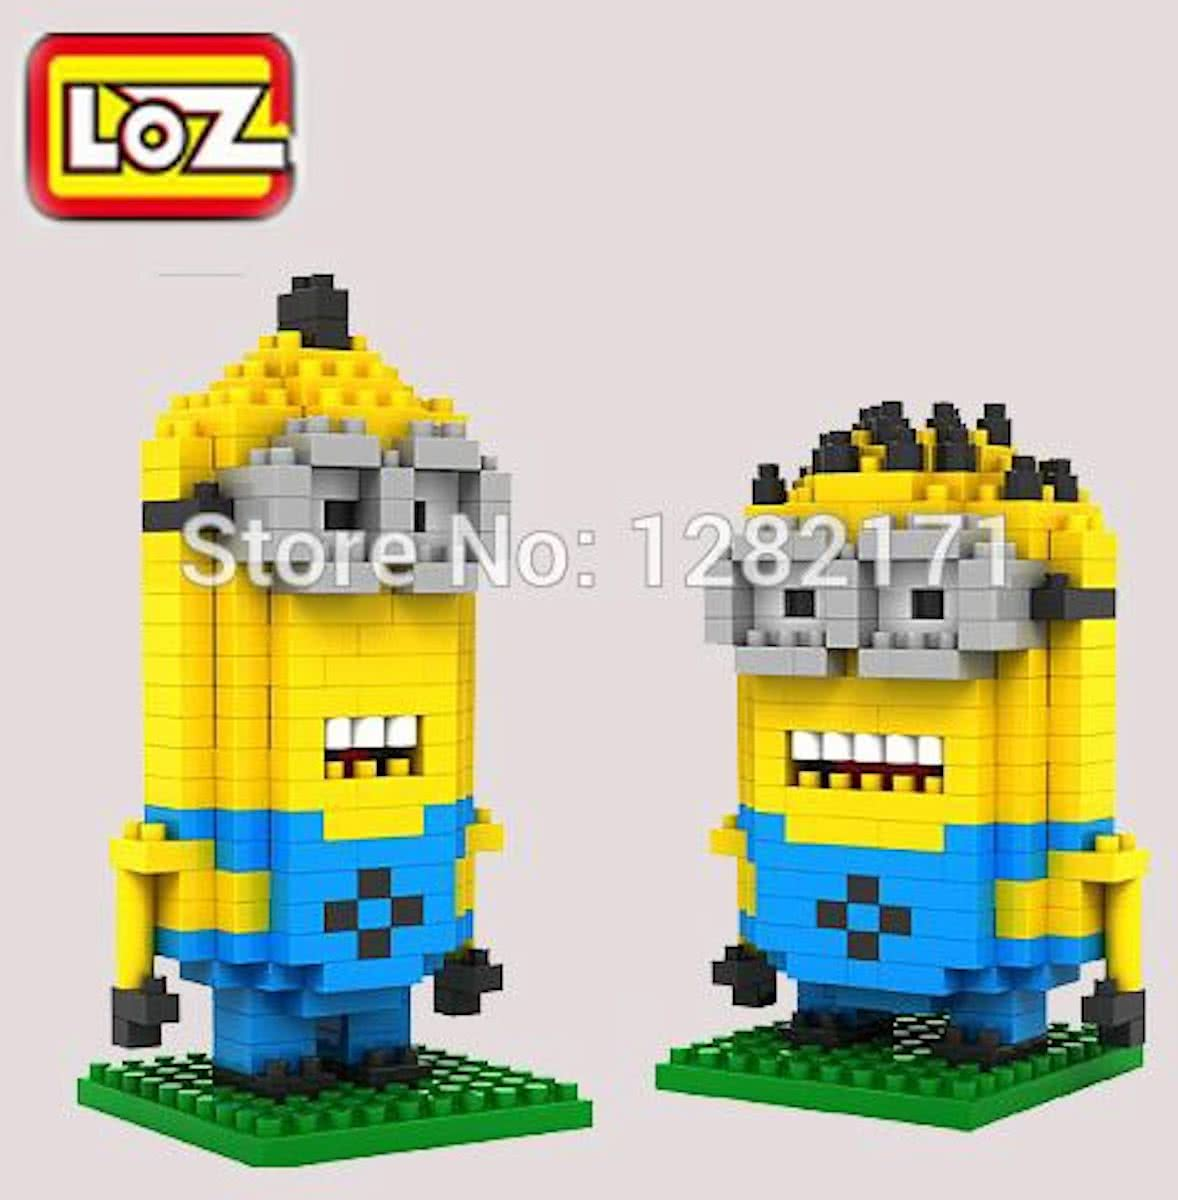 Mini-Minions Kevin en Dave in 1 verpakking  LOZ, DIamond Blocks